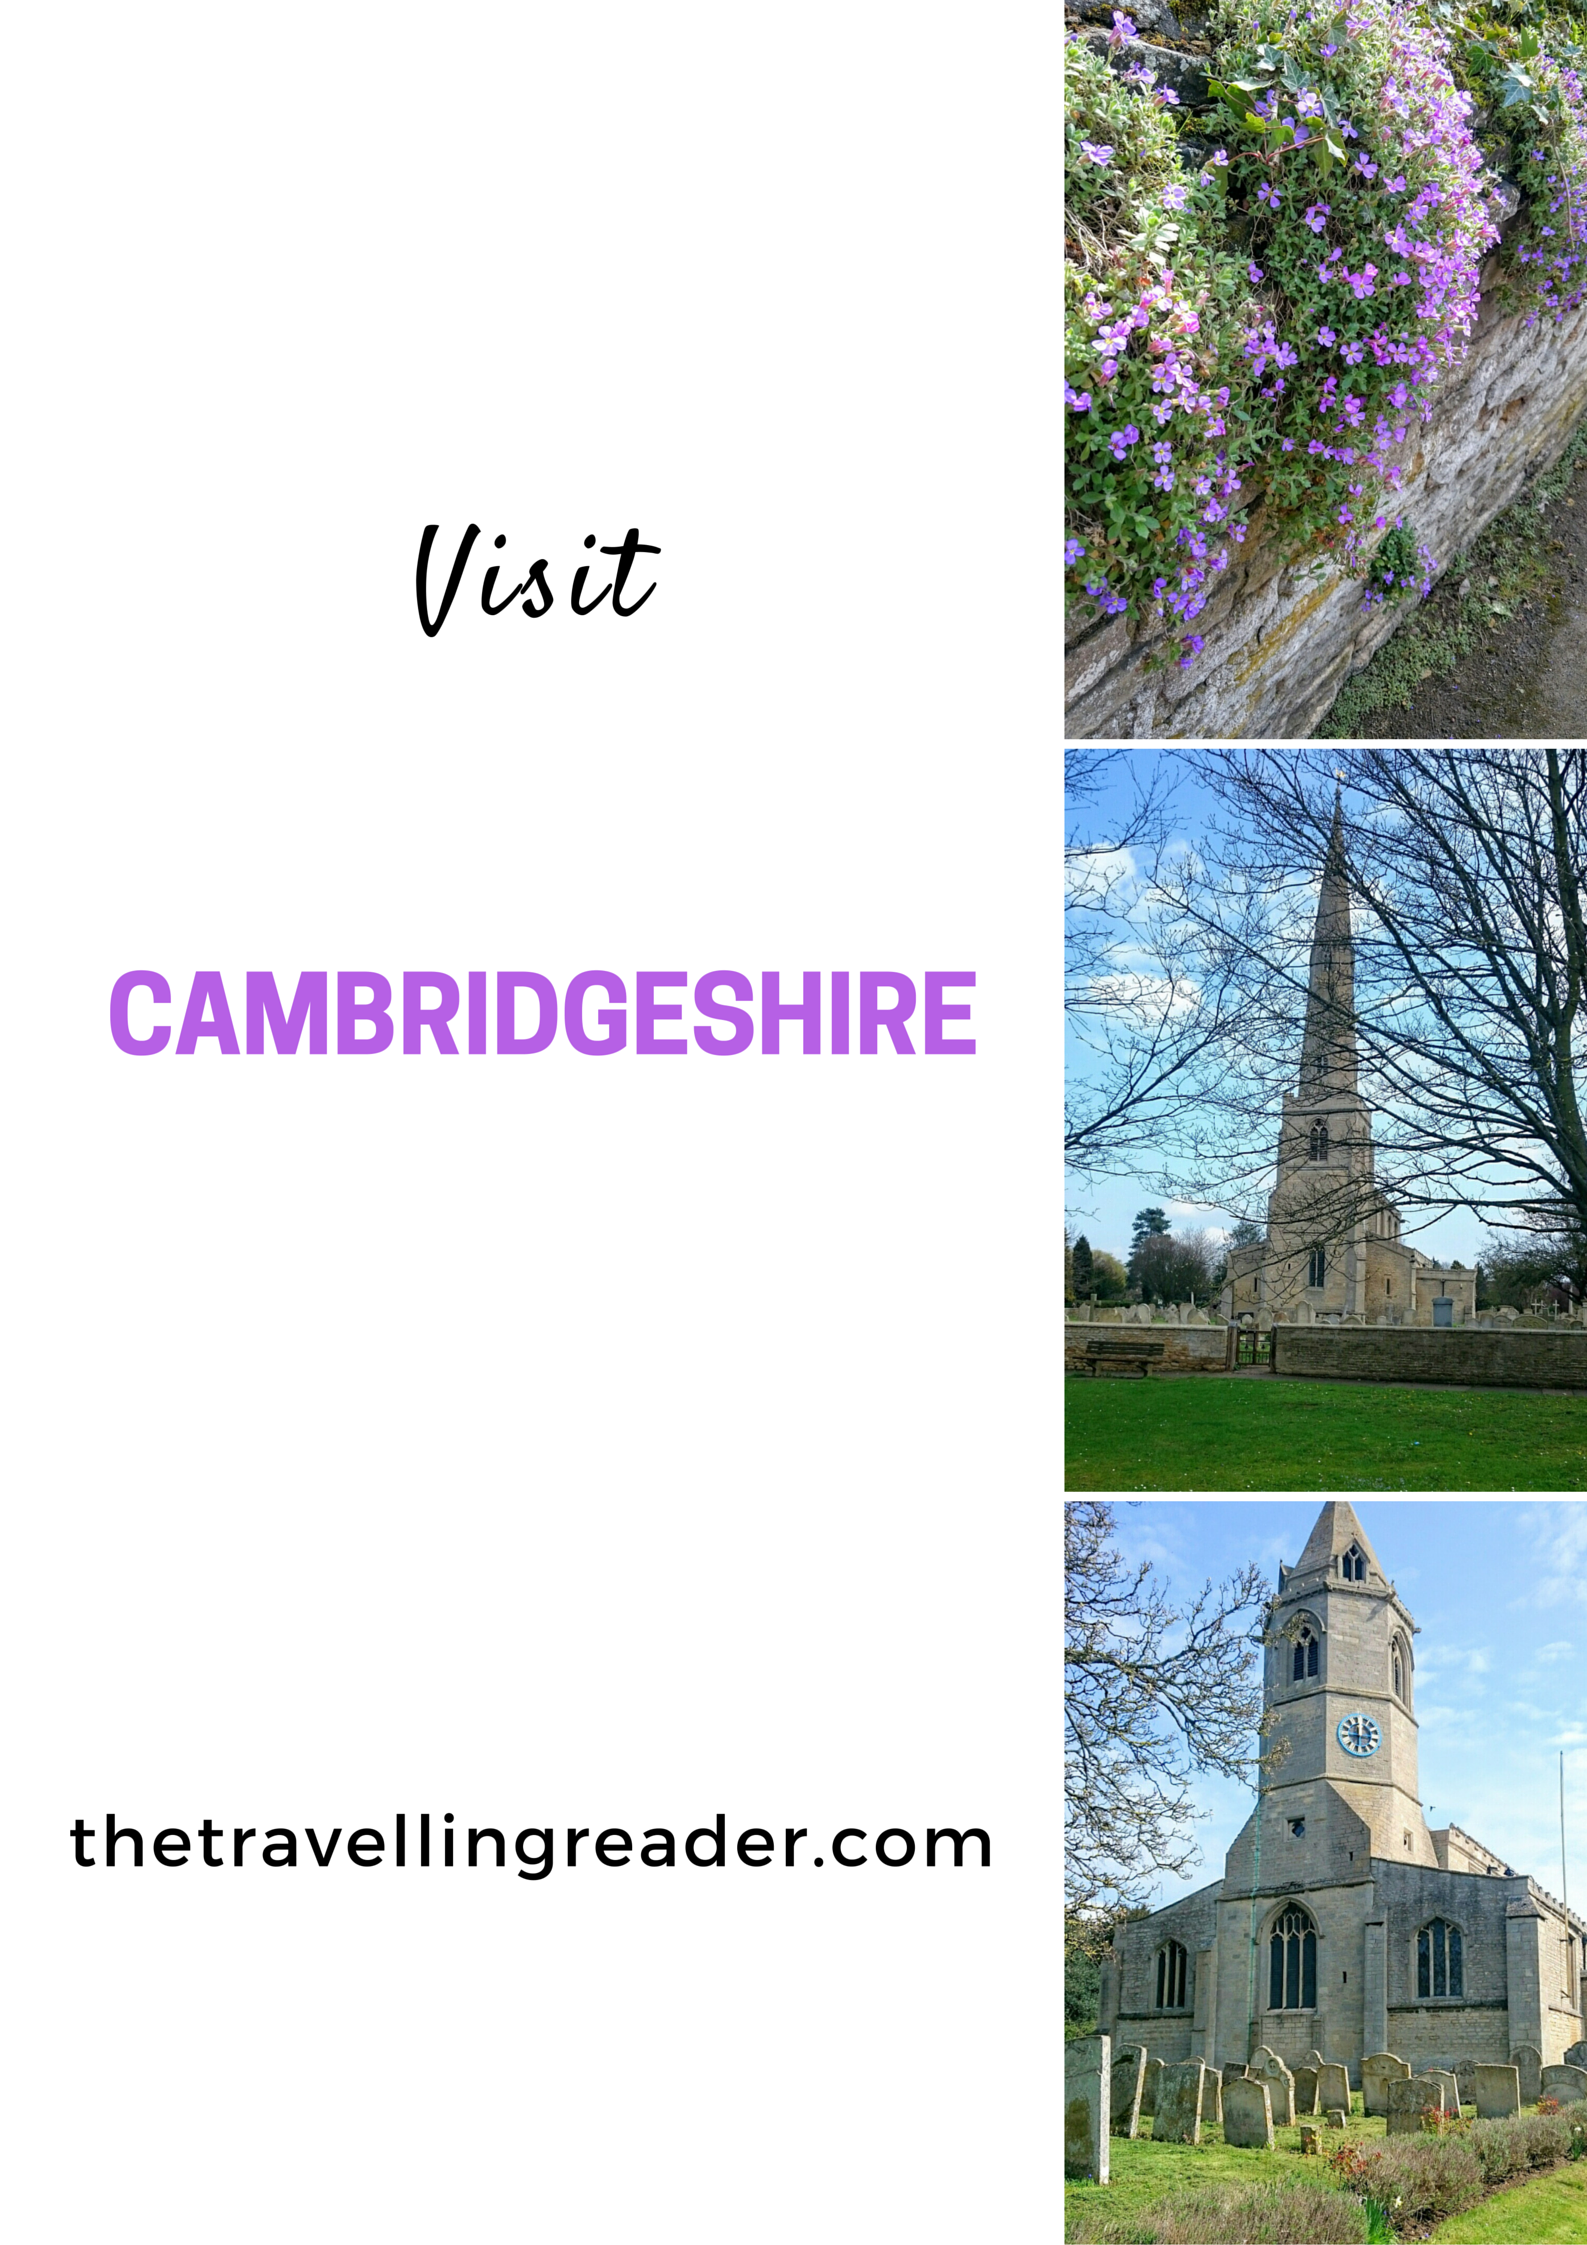 Visit the villages of Helpston, Glinton and Northborough with me on my reading travels.